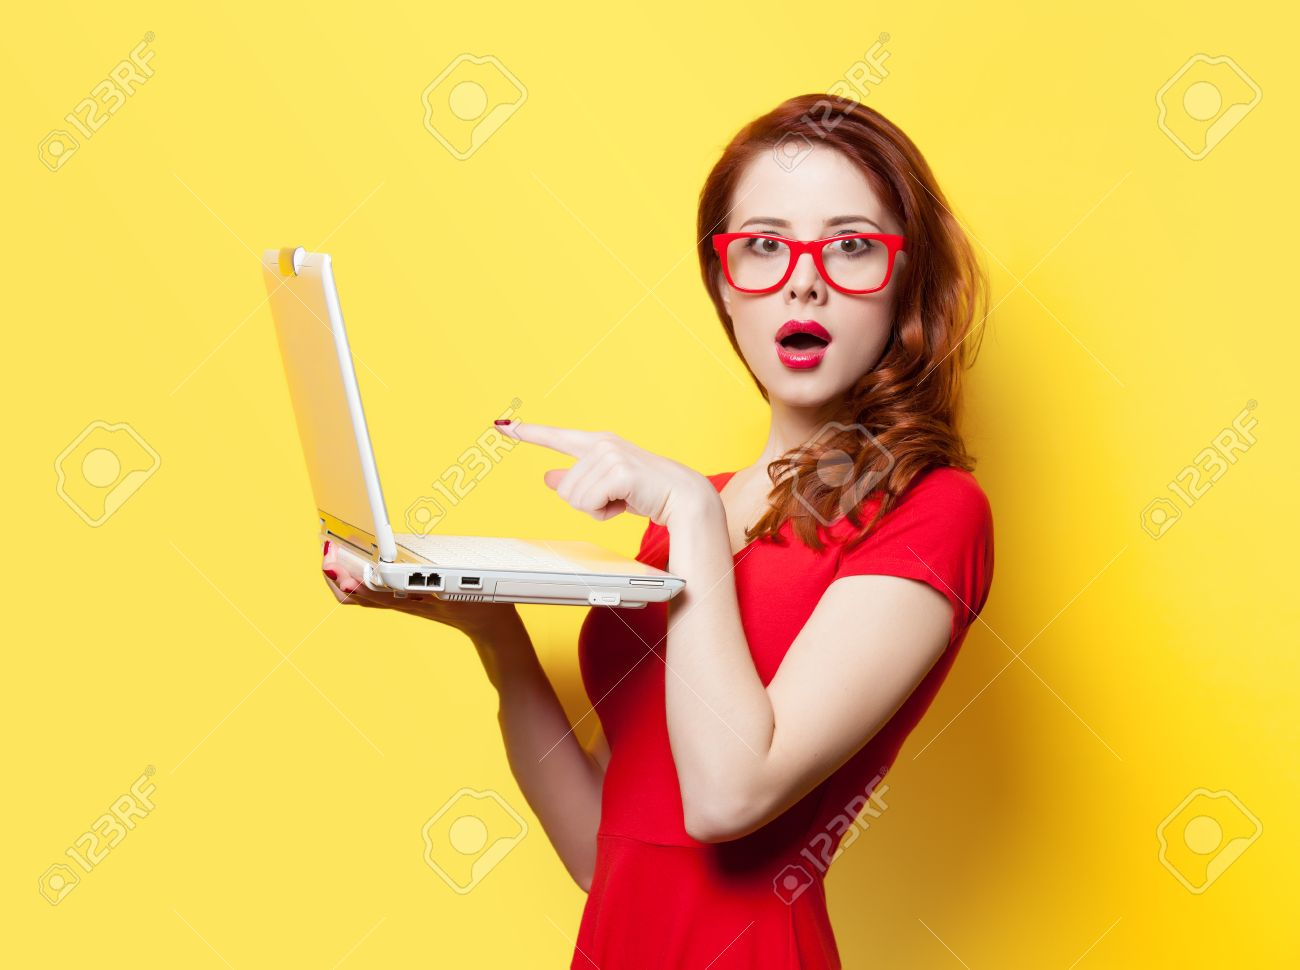 Surprised redhead girl with laptop on yellow background - 37324384